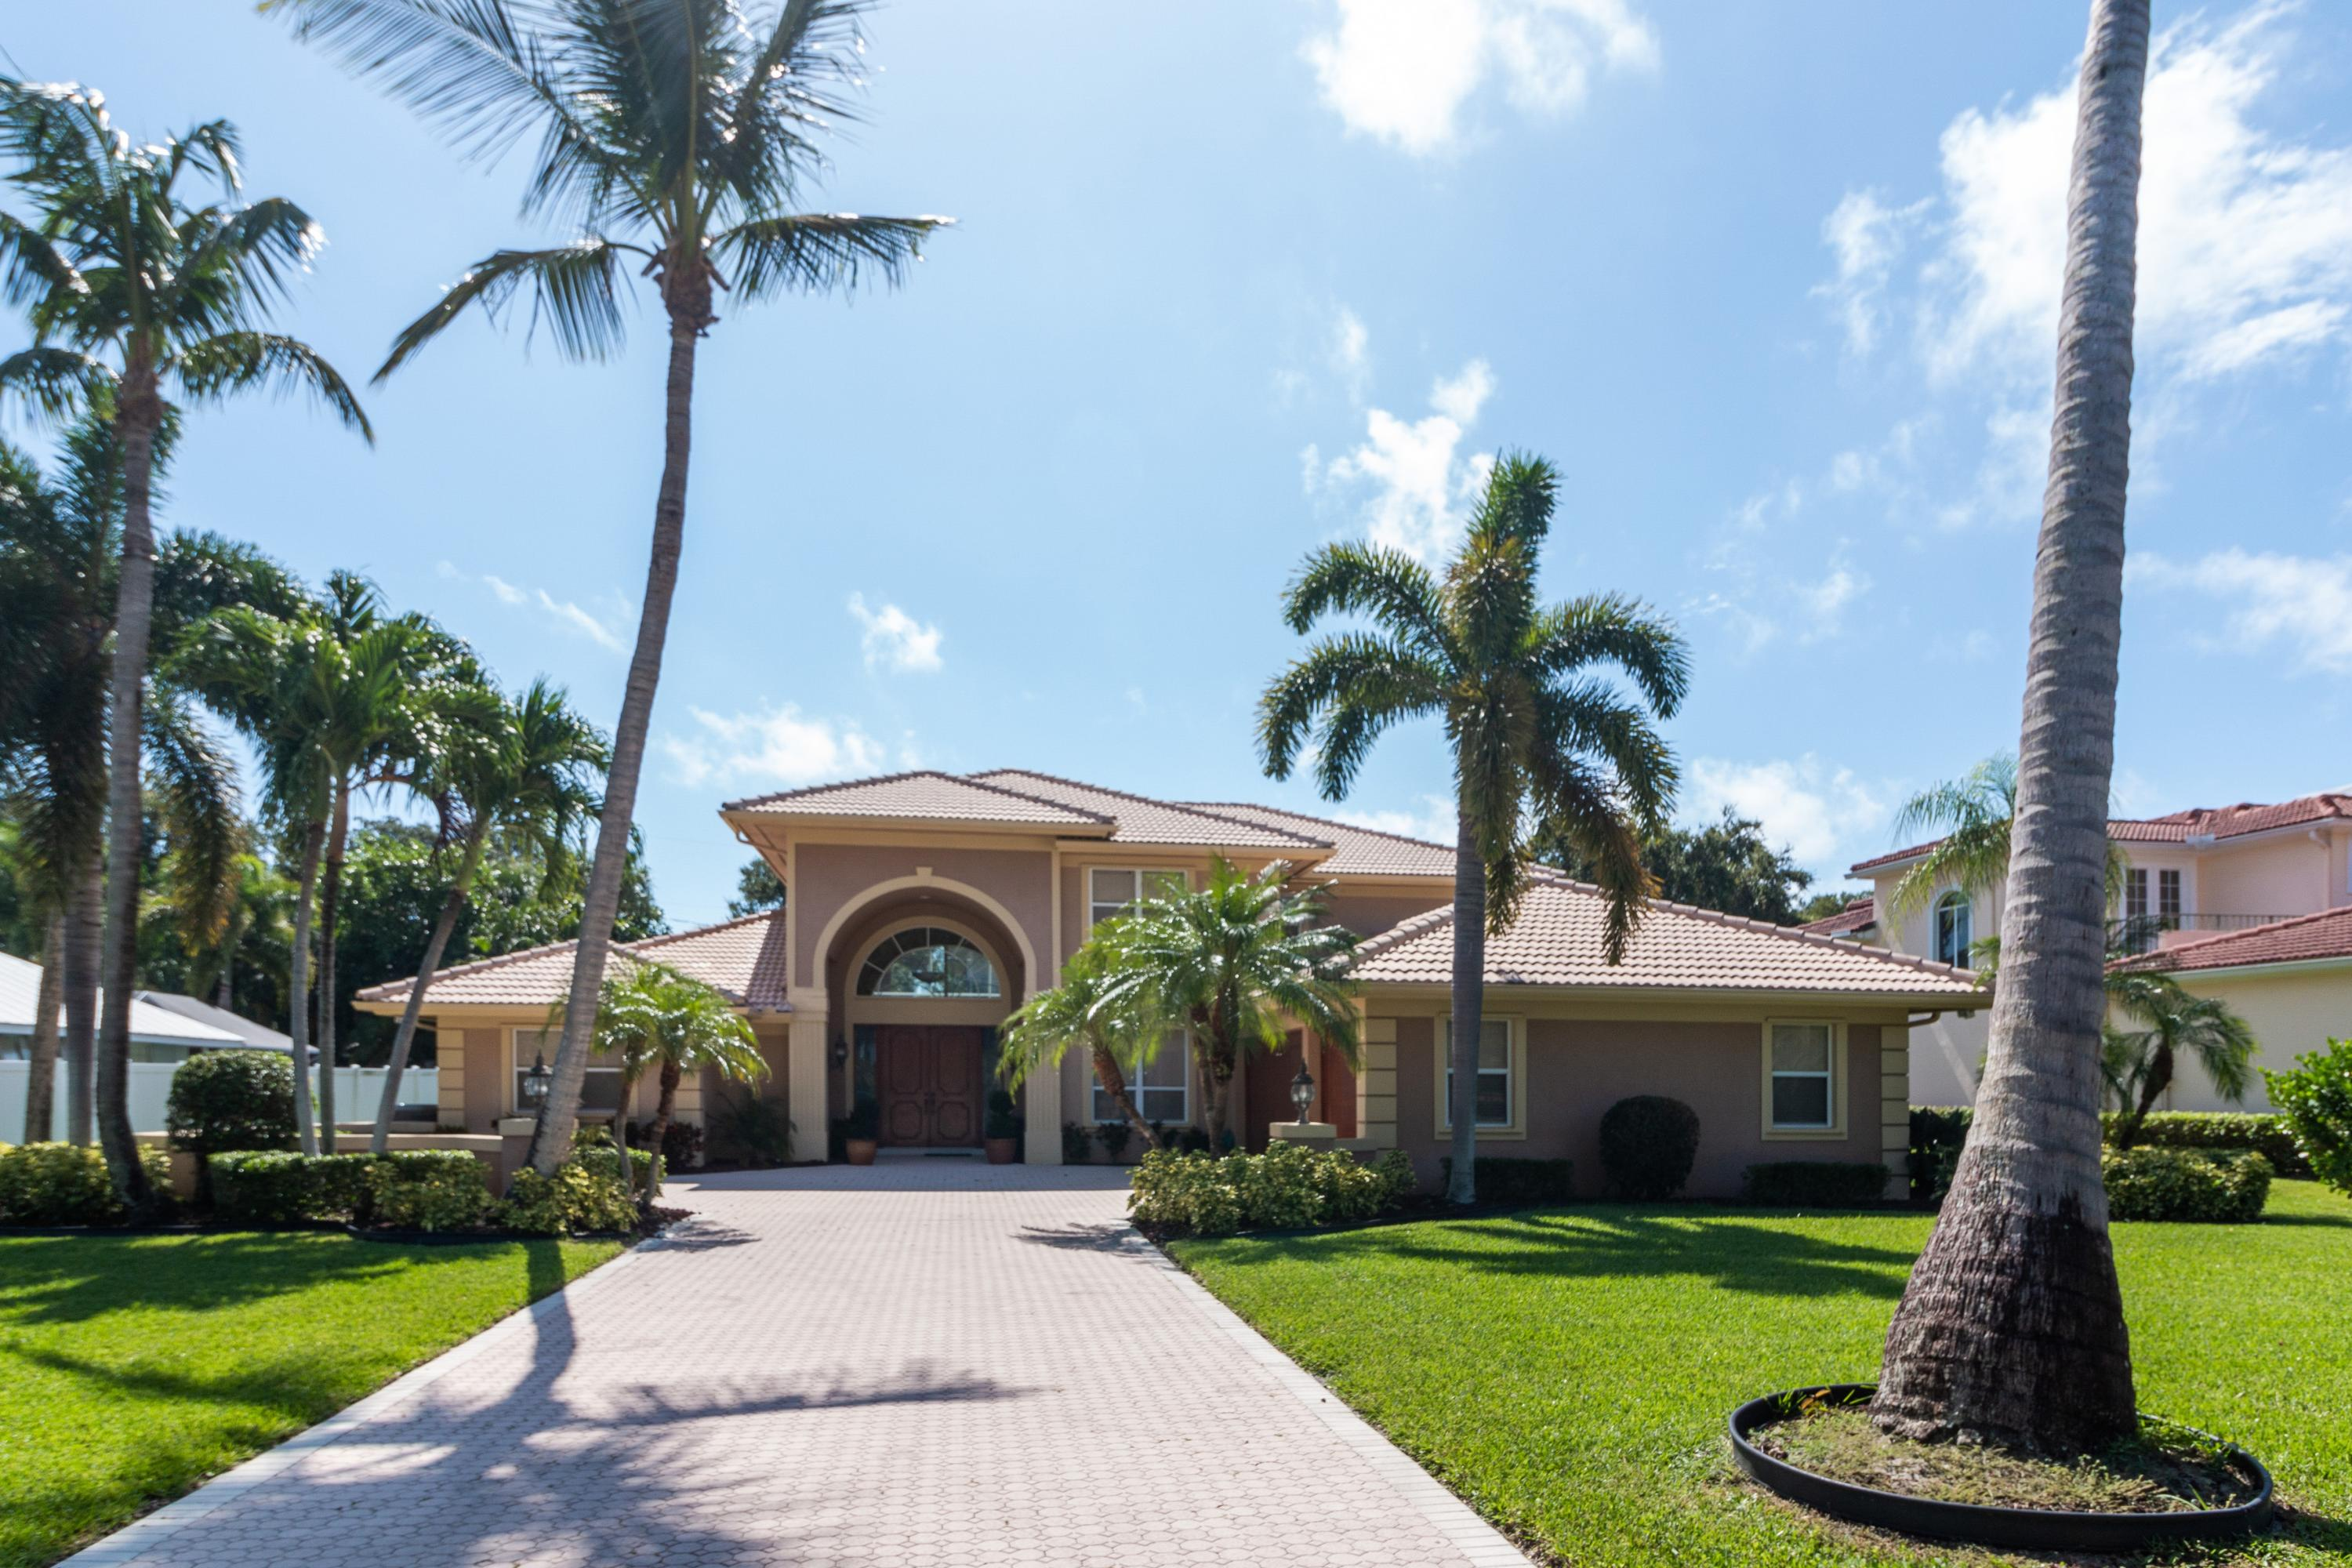 Details for 36 High Point Road W, Sewalls Point, FL 34996